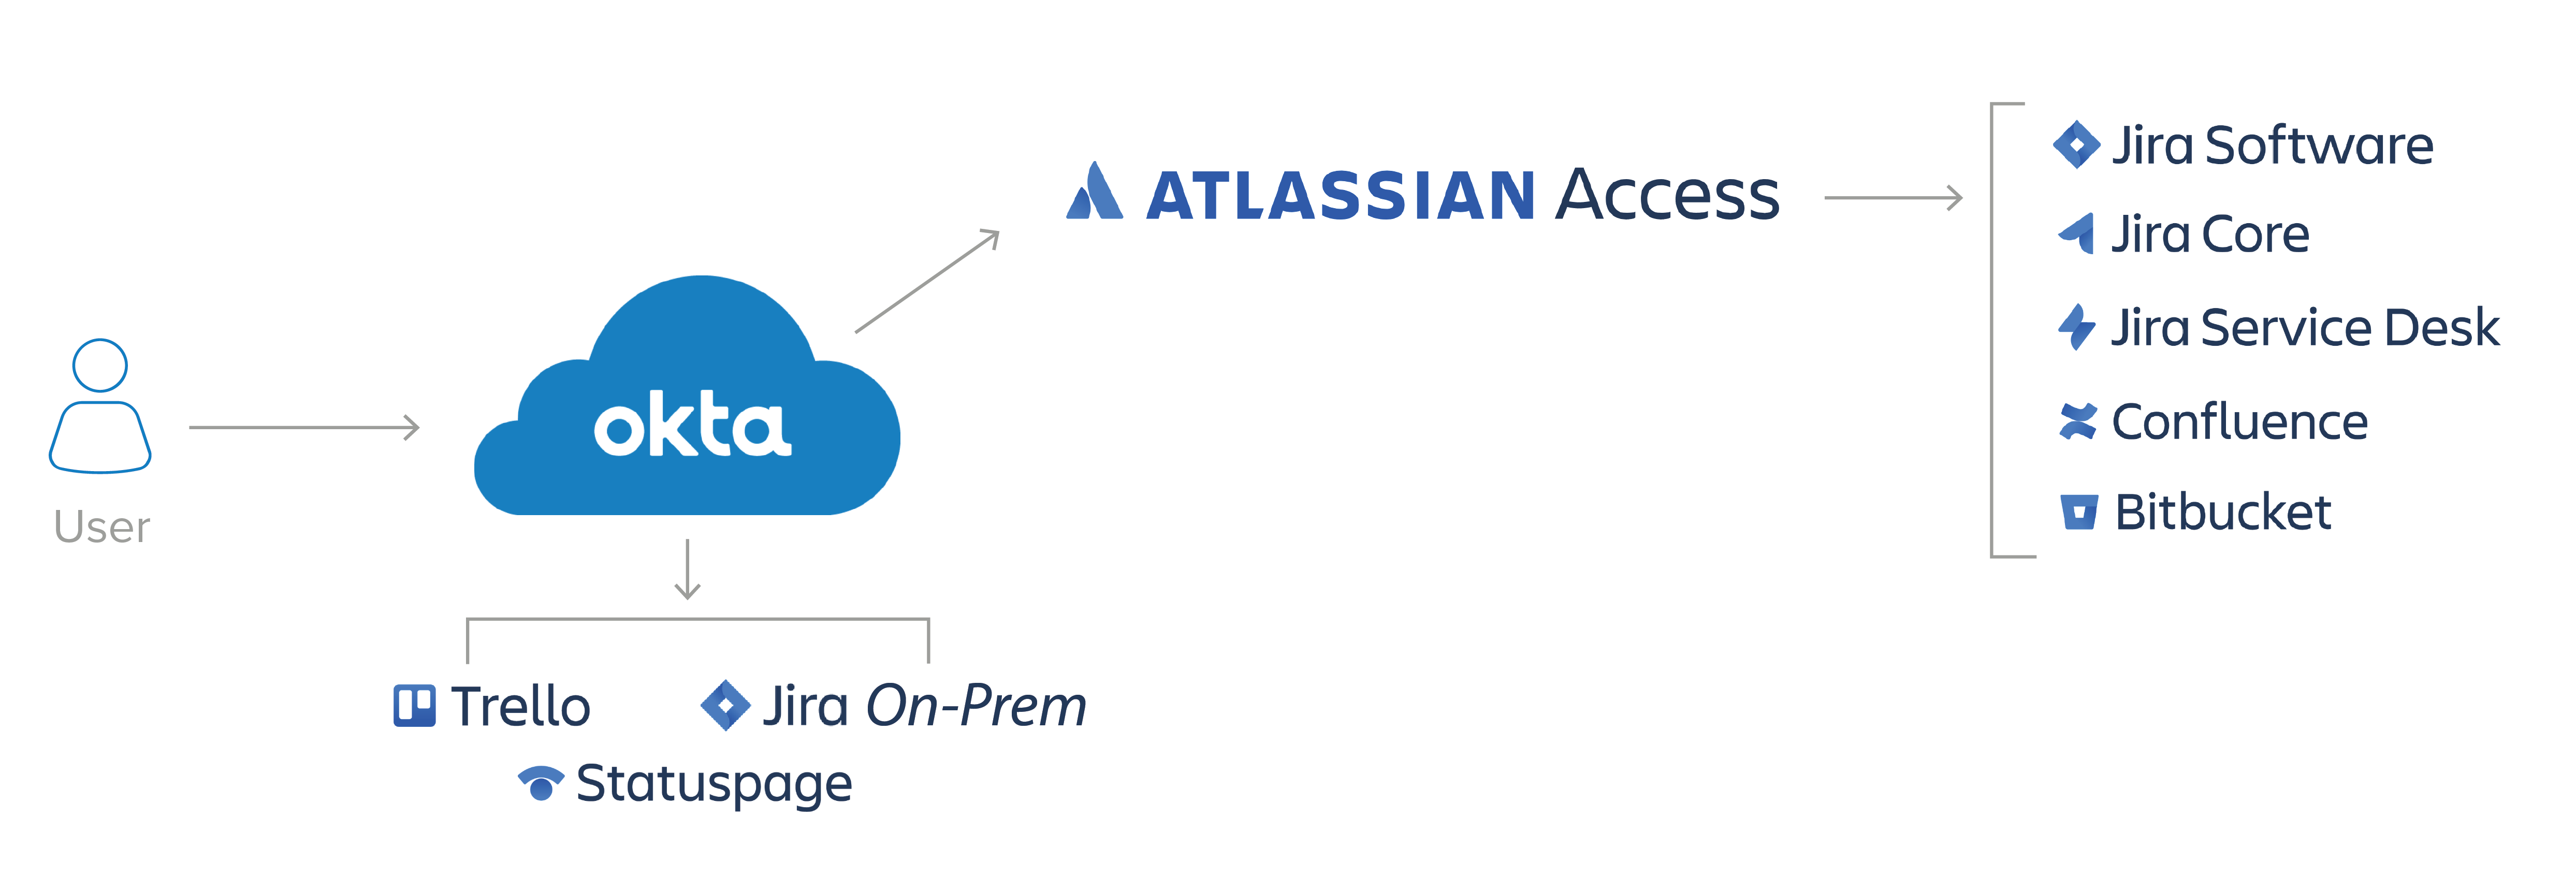 Okta integrates with Atlassian Access to offer simple, secure authentication.